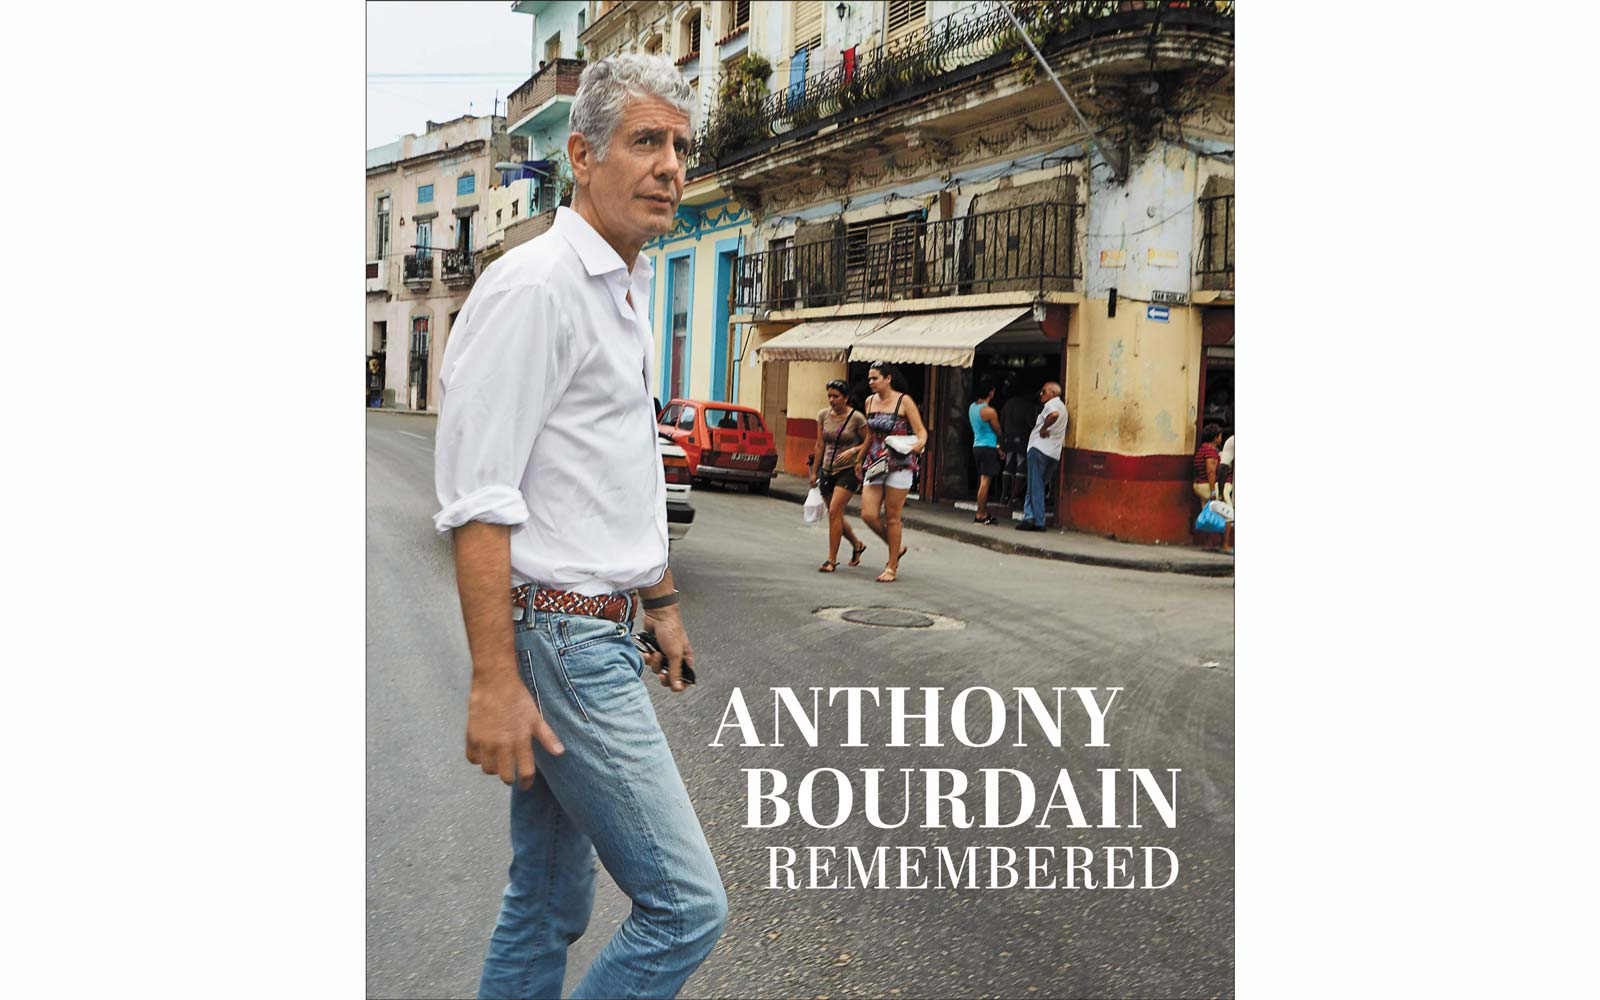 'Anthony Bourdain Remembered'